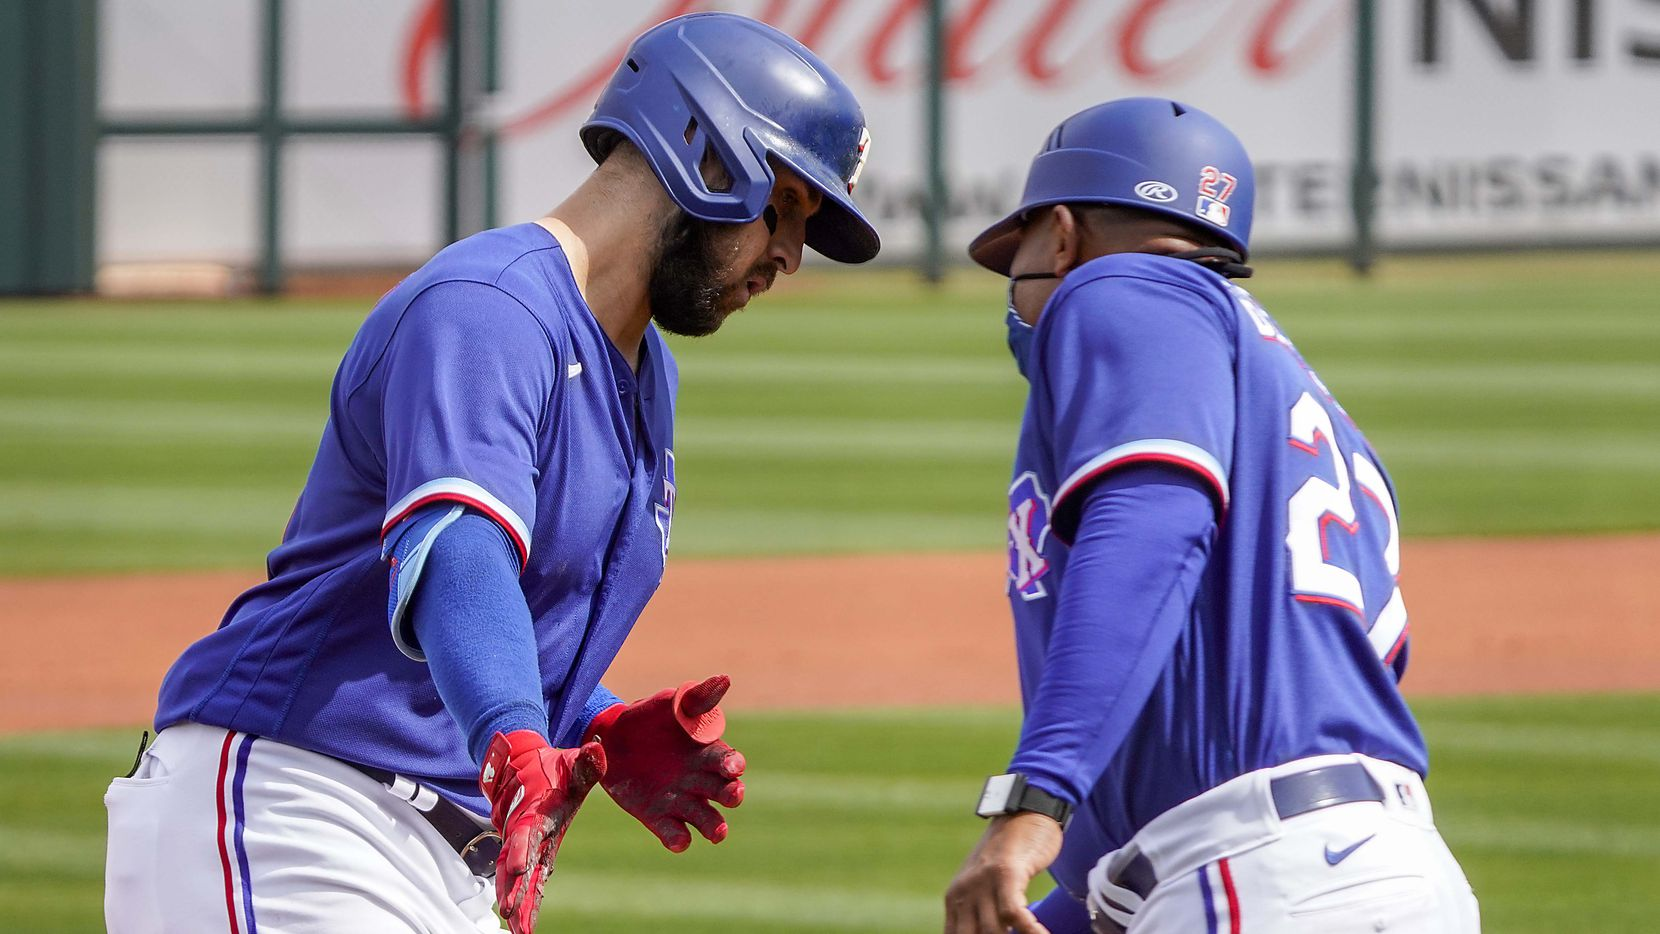 Texas Rangers outfielder Joey Gallo celebrates with third base coach Tony Beasley as he rounds the bases after hitting a solo home run off of Los Angeles Dodgers starting pitcher Walker Buehler during the first inning of a spring training game at Surprise Stadium on Sunday, March 7, 2021, in Surprise, Ariz.